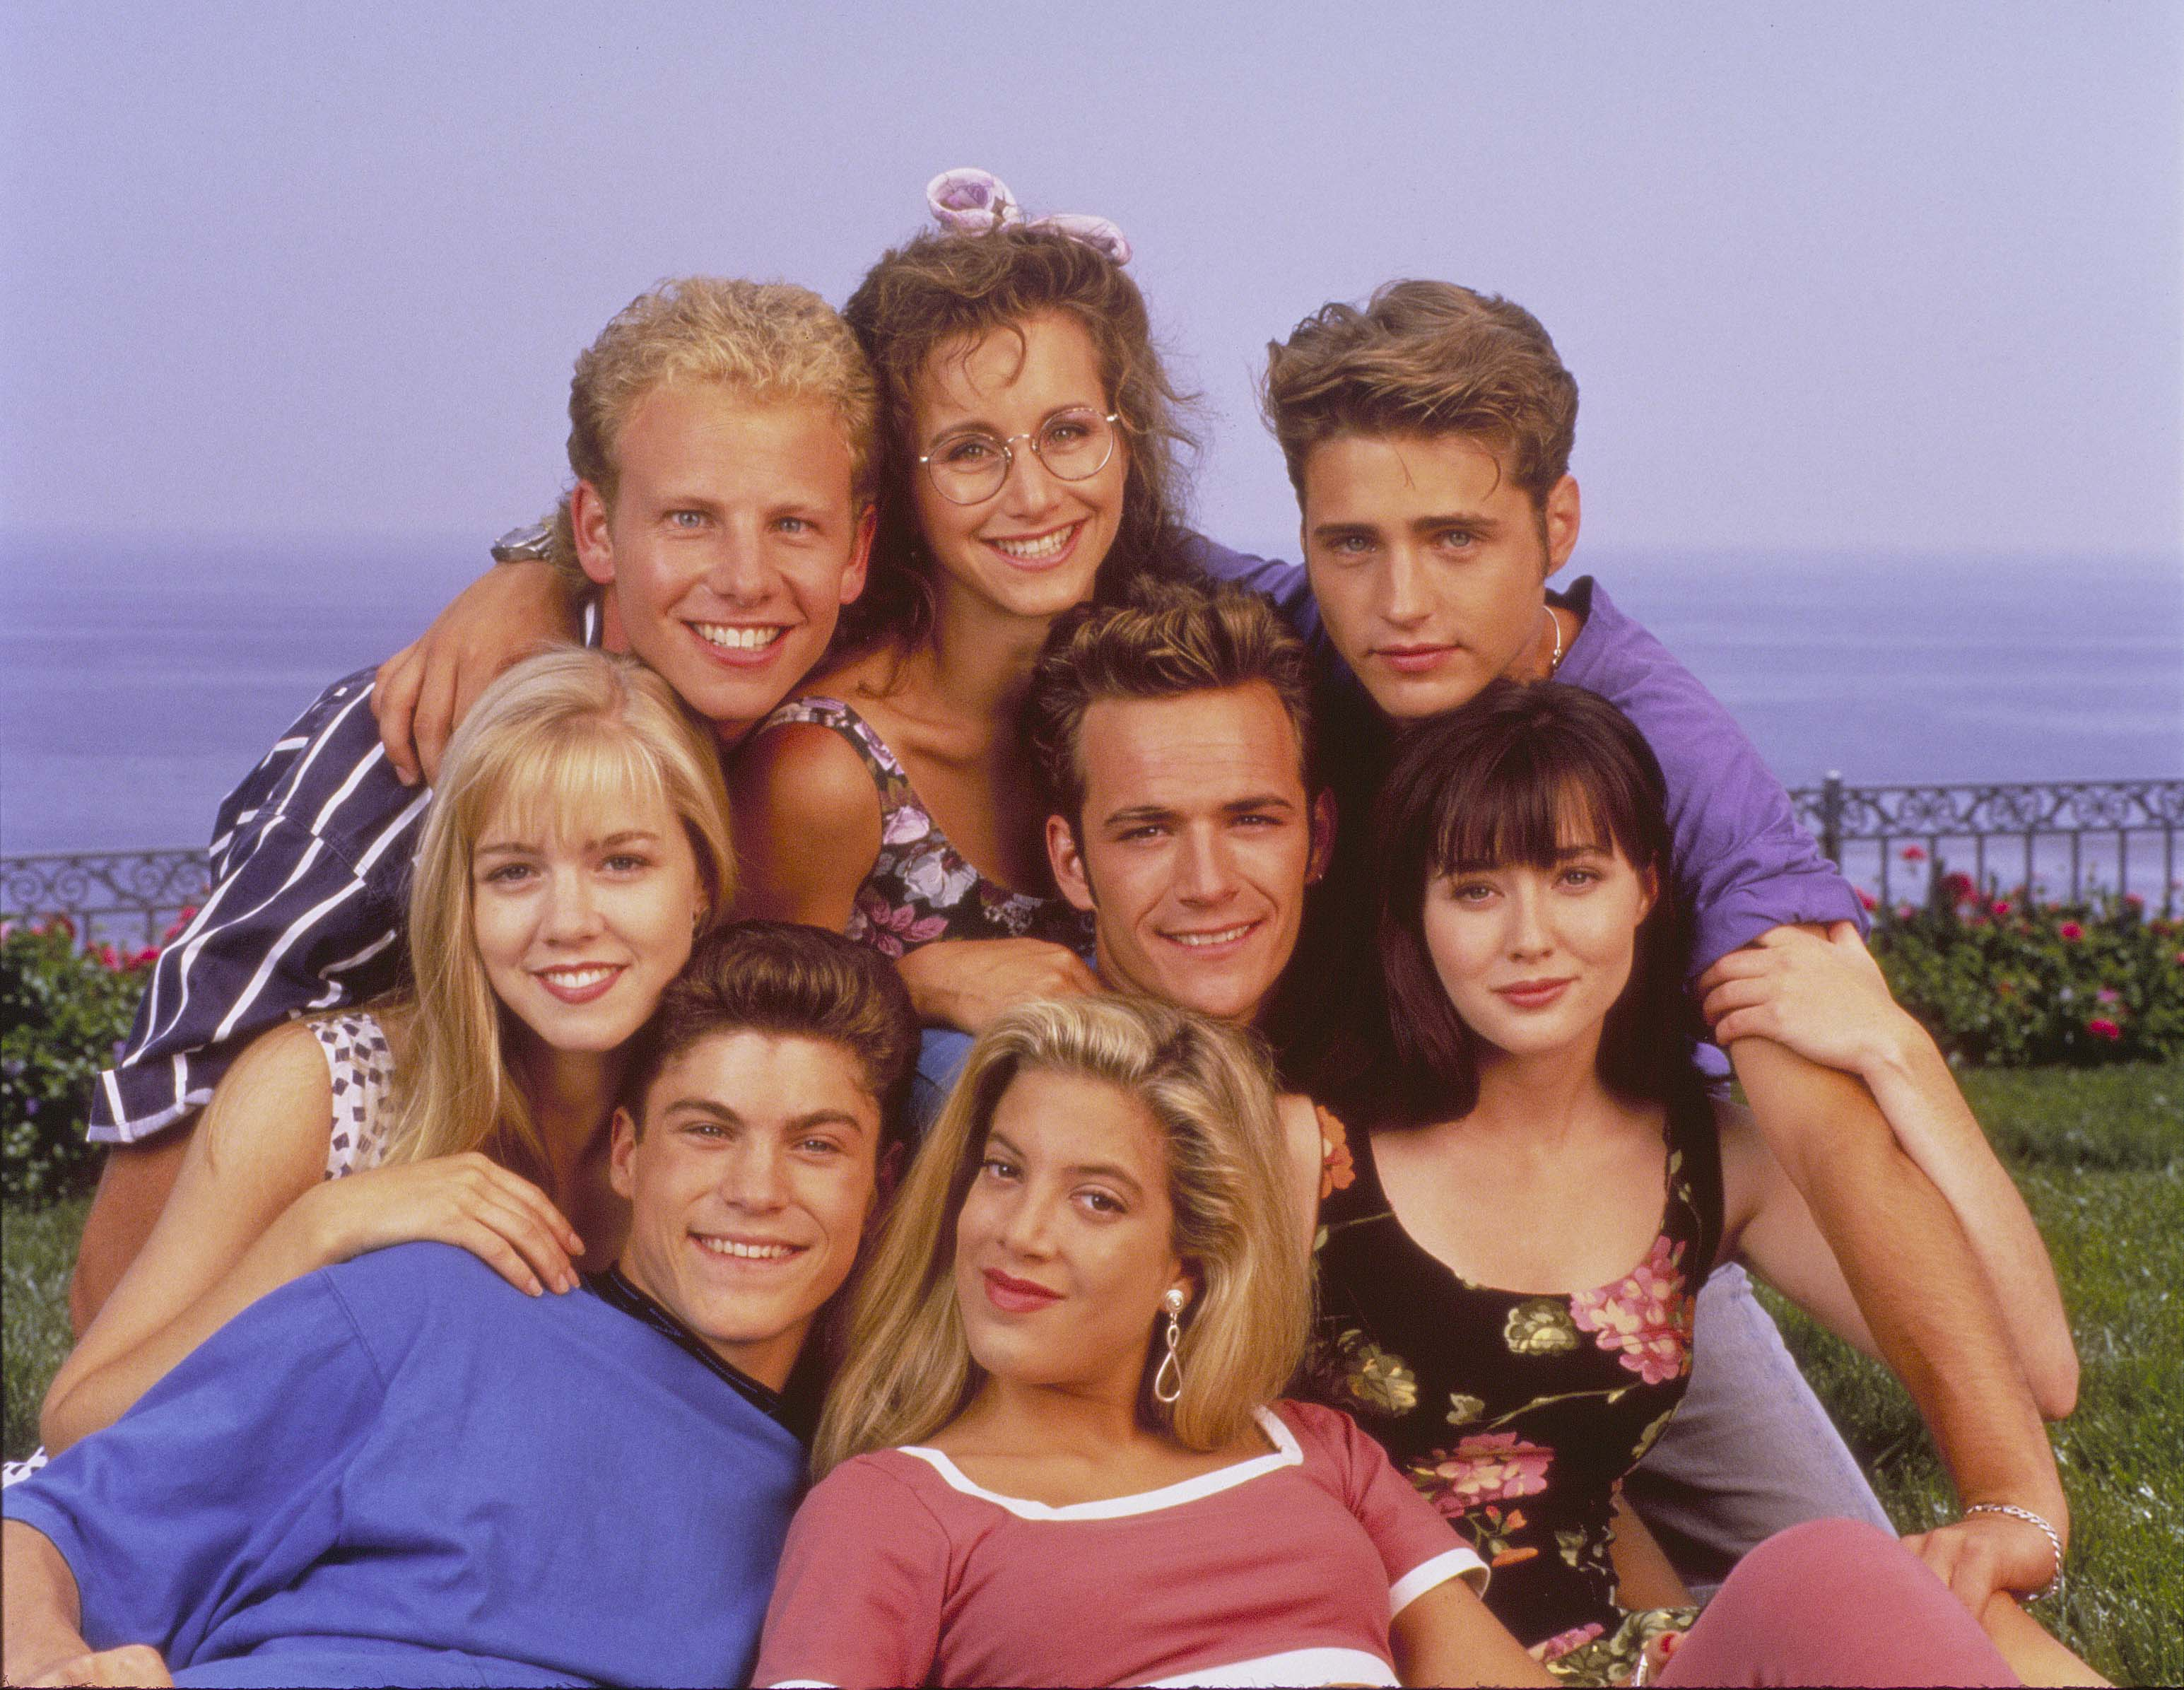 http://images.wikia.com/90210/images/2/25/Beverly_Hills_90210_-_Season_2.jpg